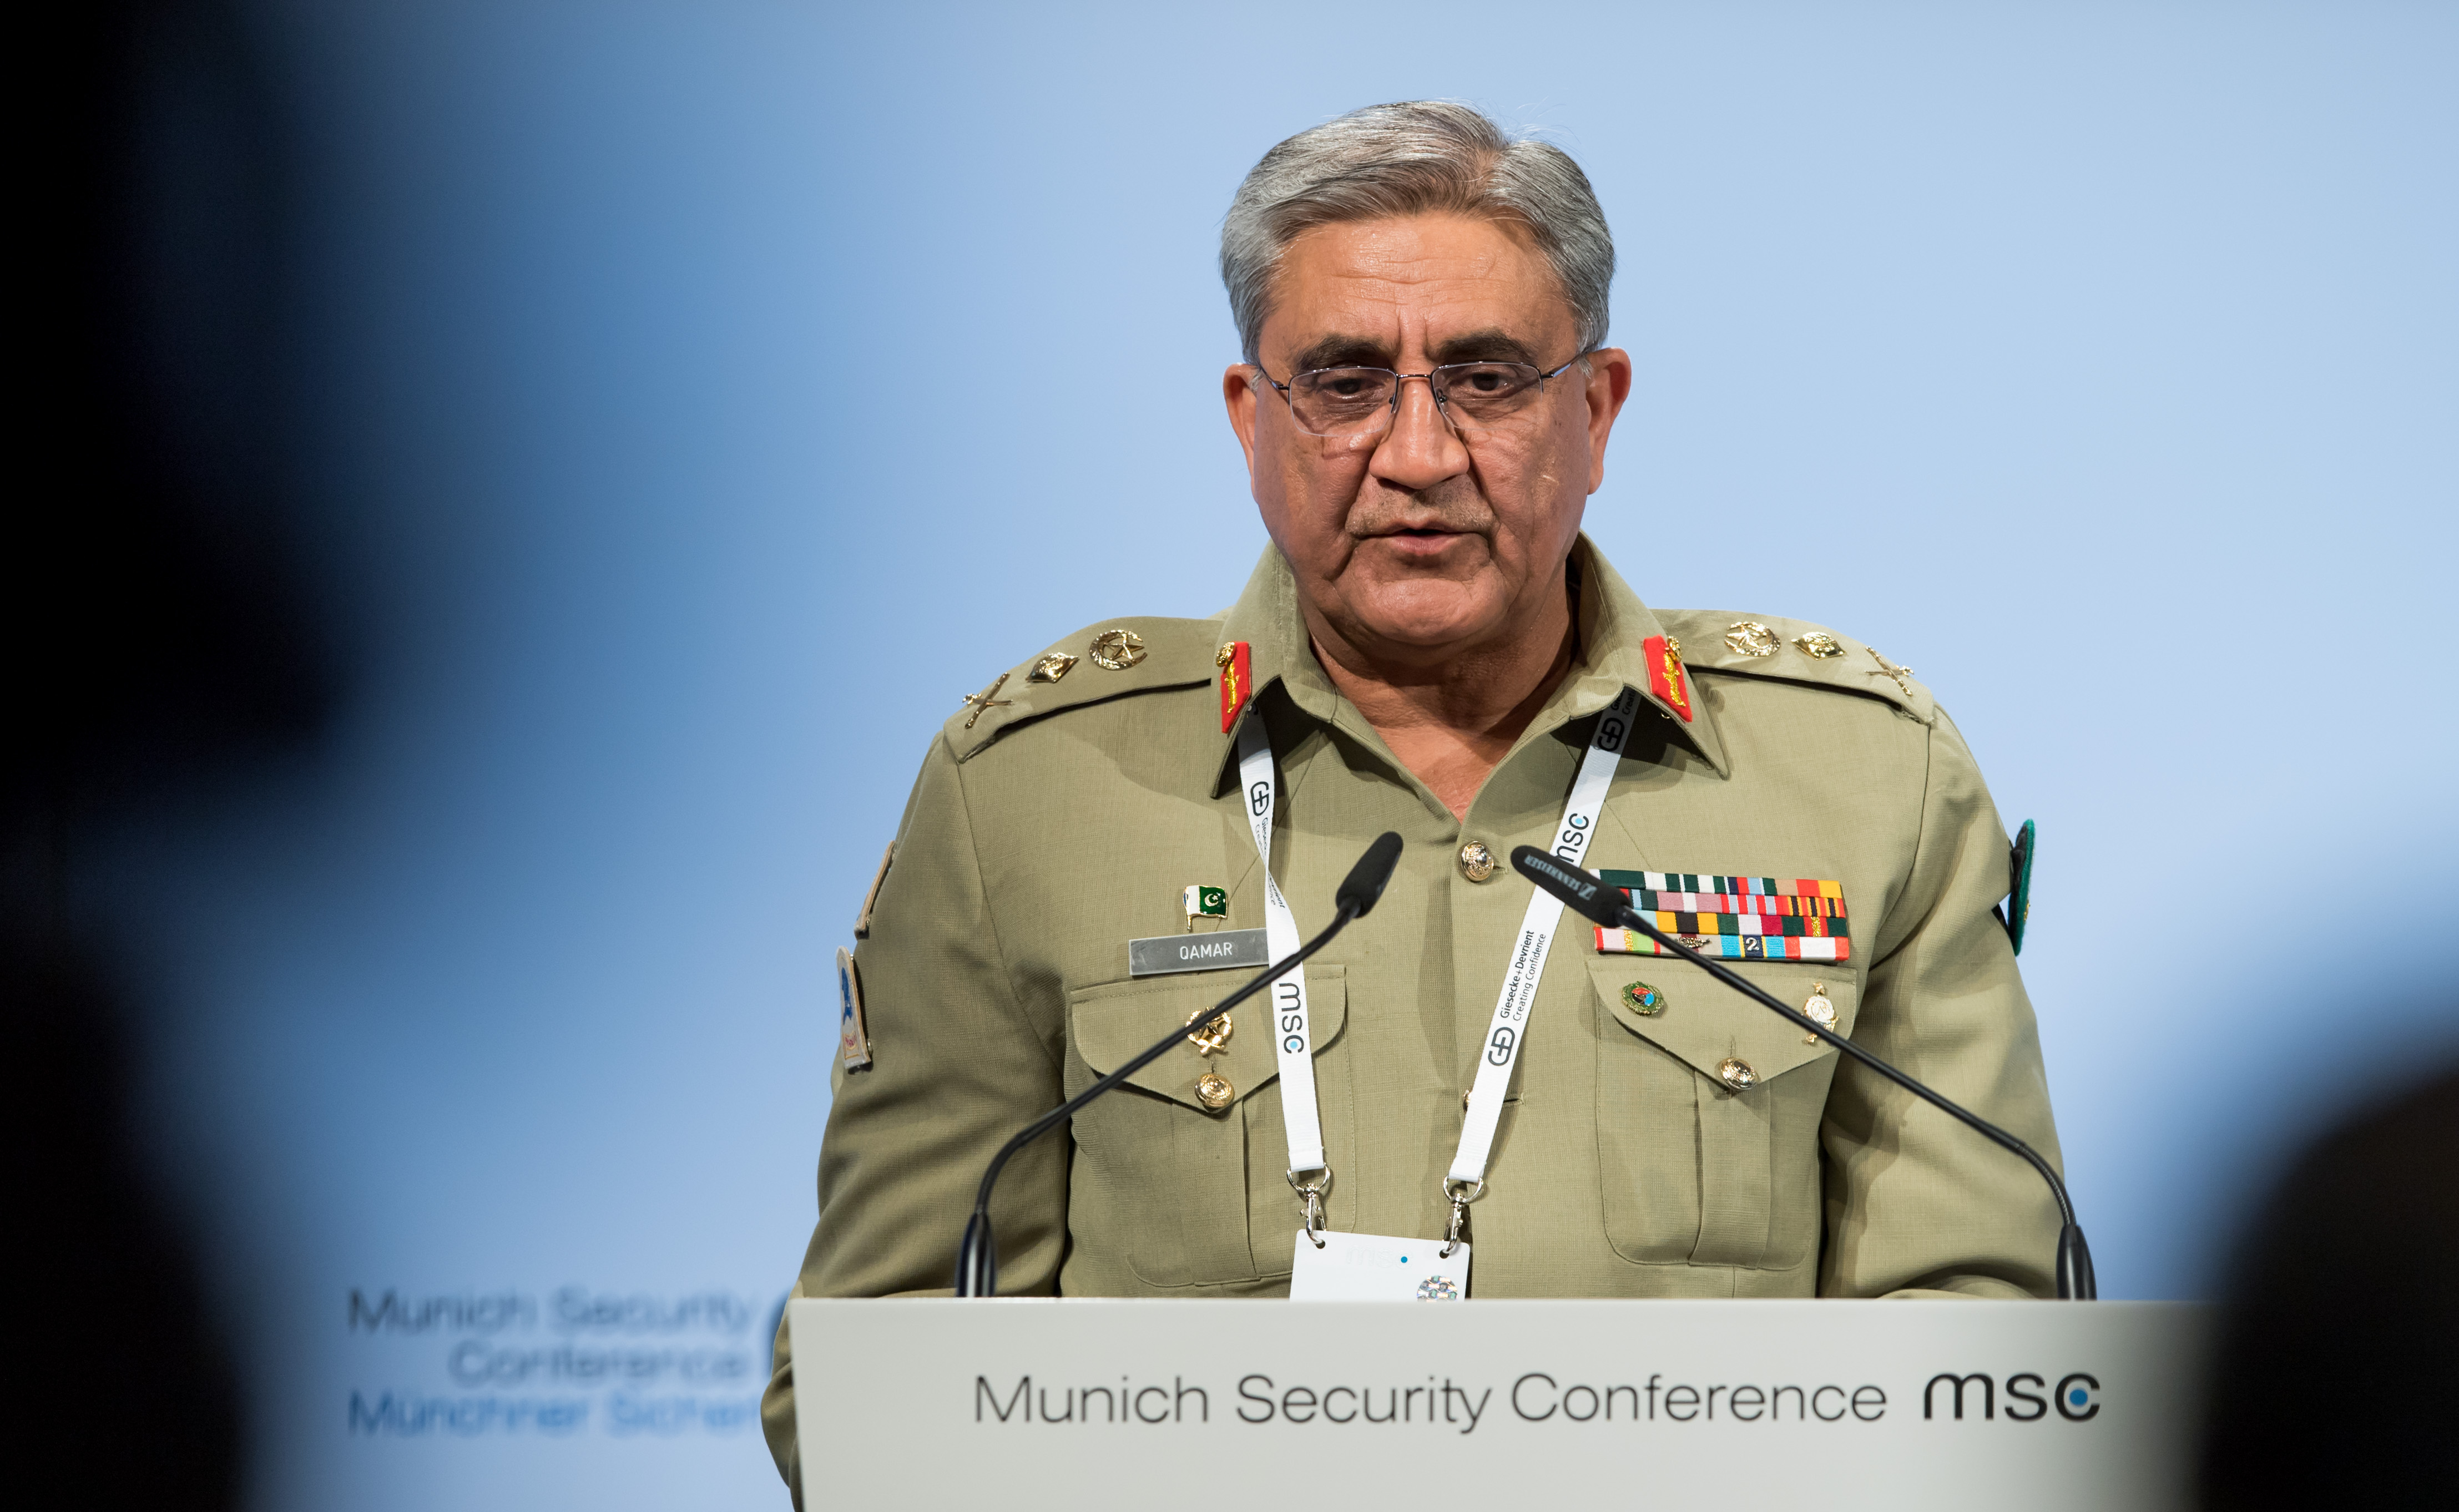 About Extensions for Pakistan's Chief of Army Staff